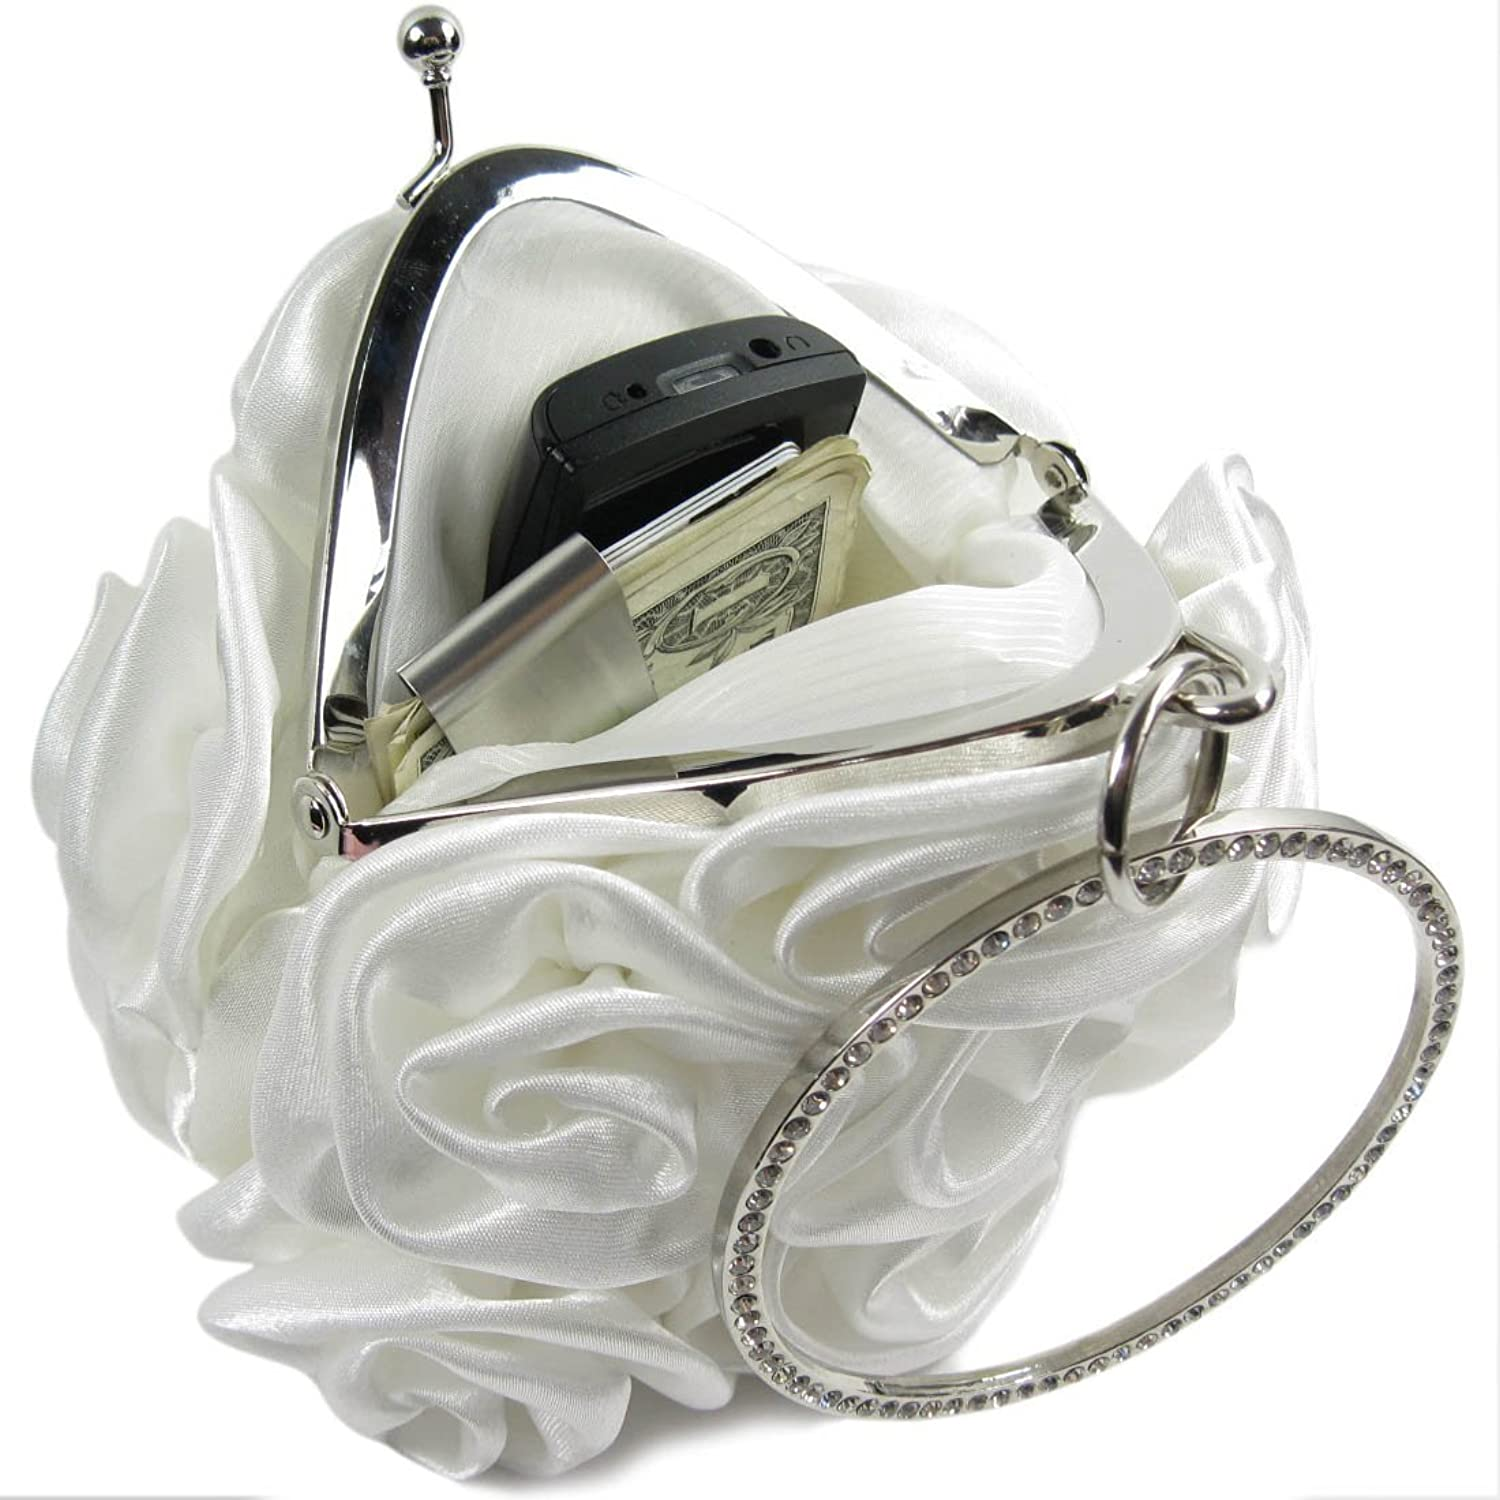 Missy K Rose Clutch Purse, Satin, with Circle Handle - White + kilofly Money Clip